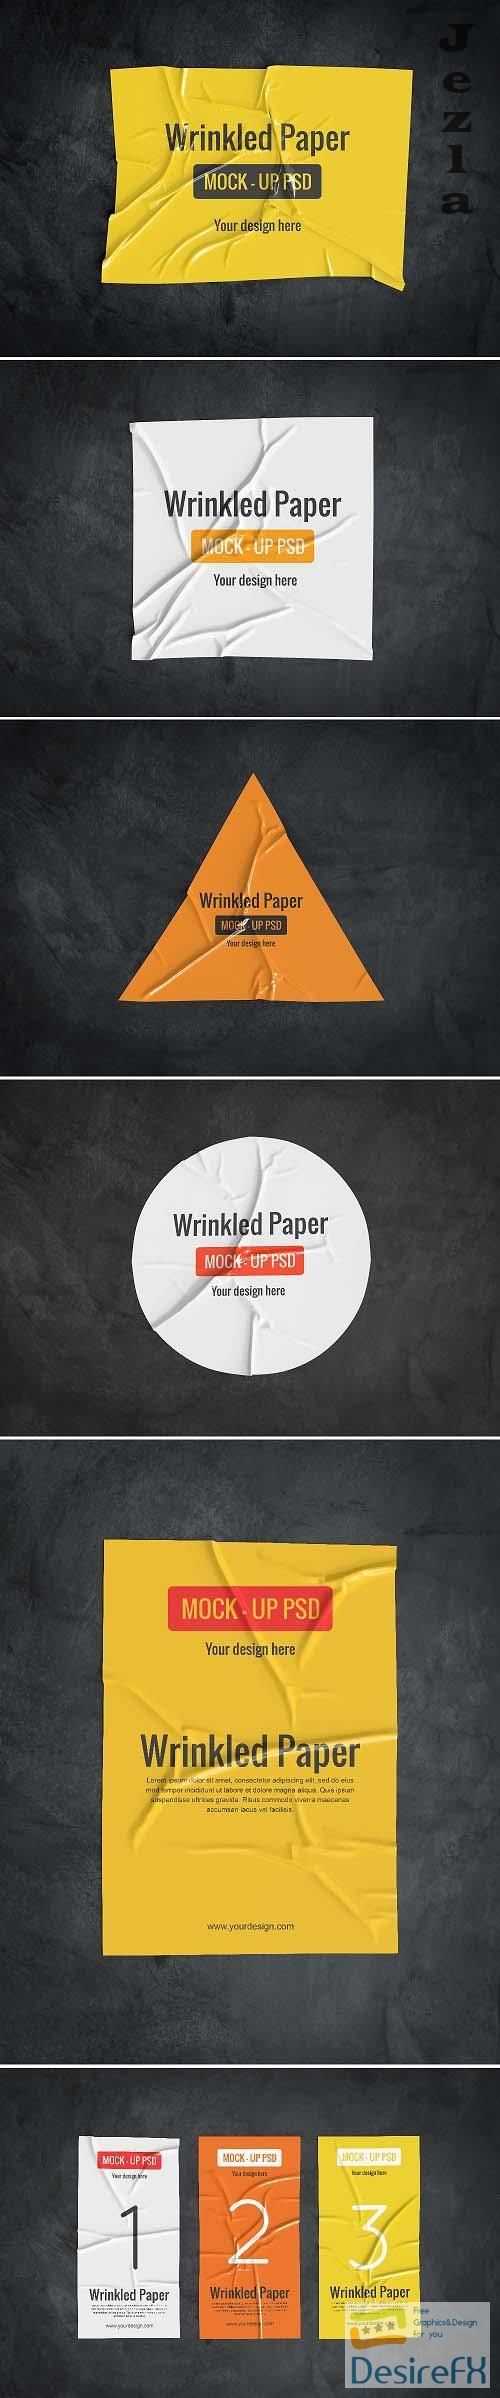 Wrinkled Paper Mockup Collection